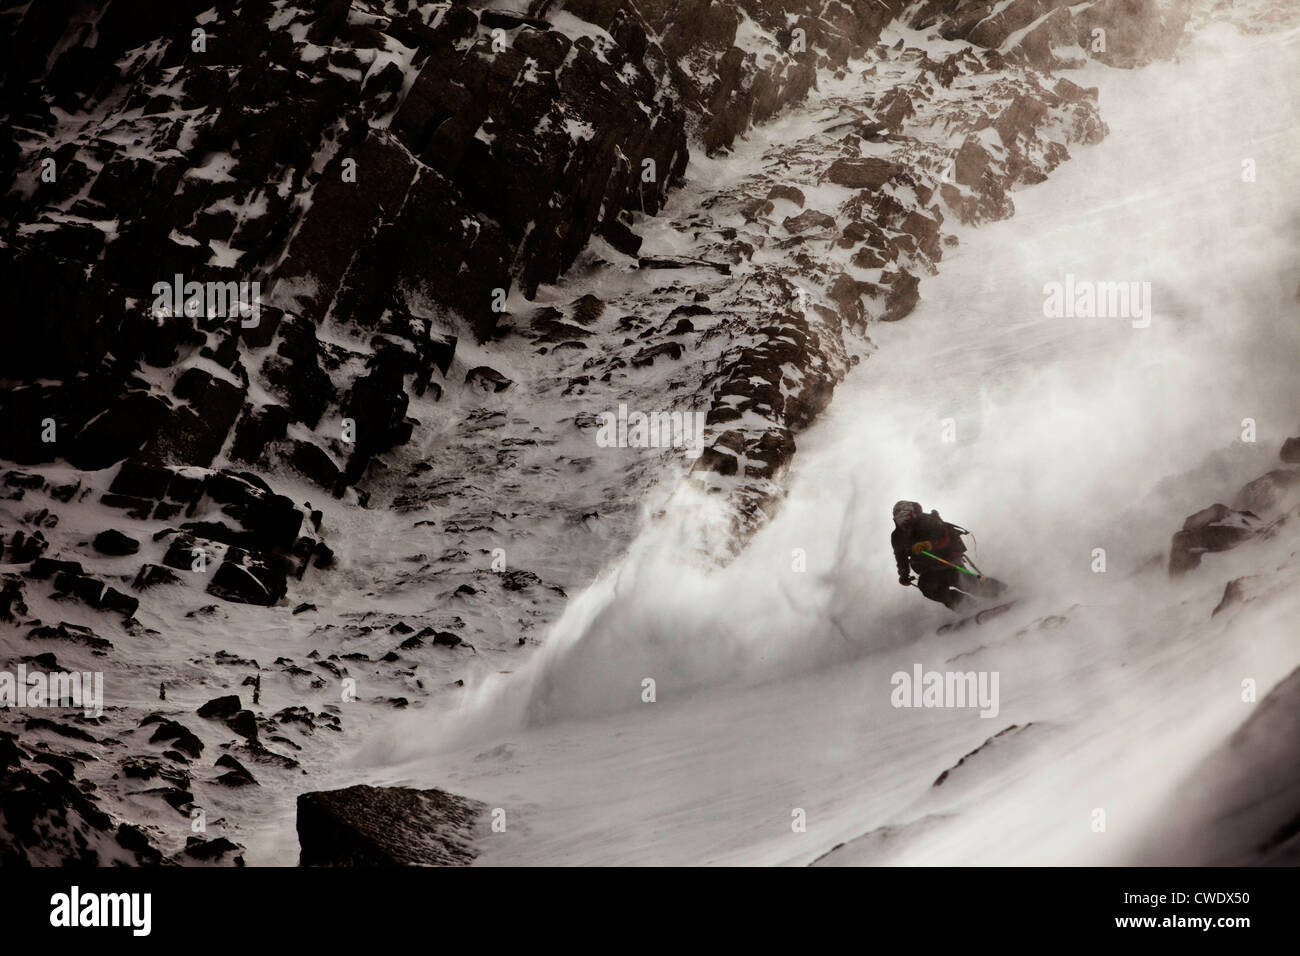 A athletic skier charges down a rocky mountain in the back country in Montana. - Stock Image